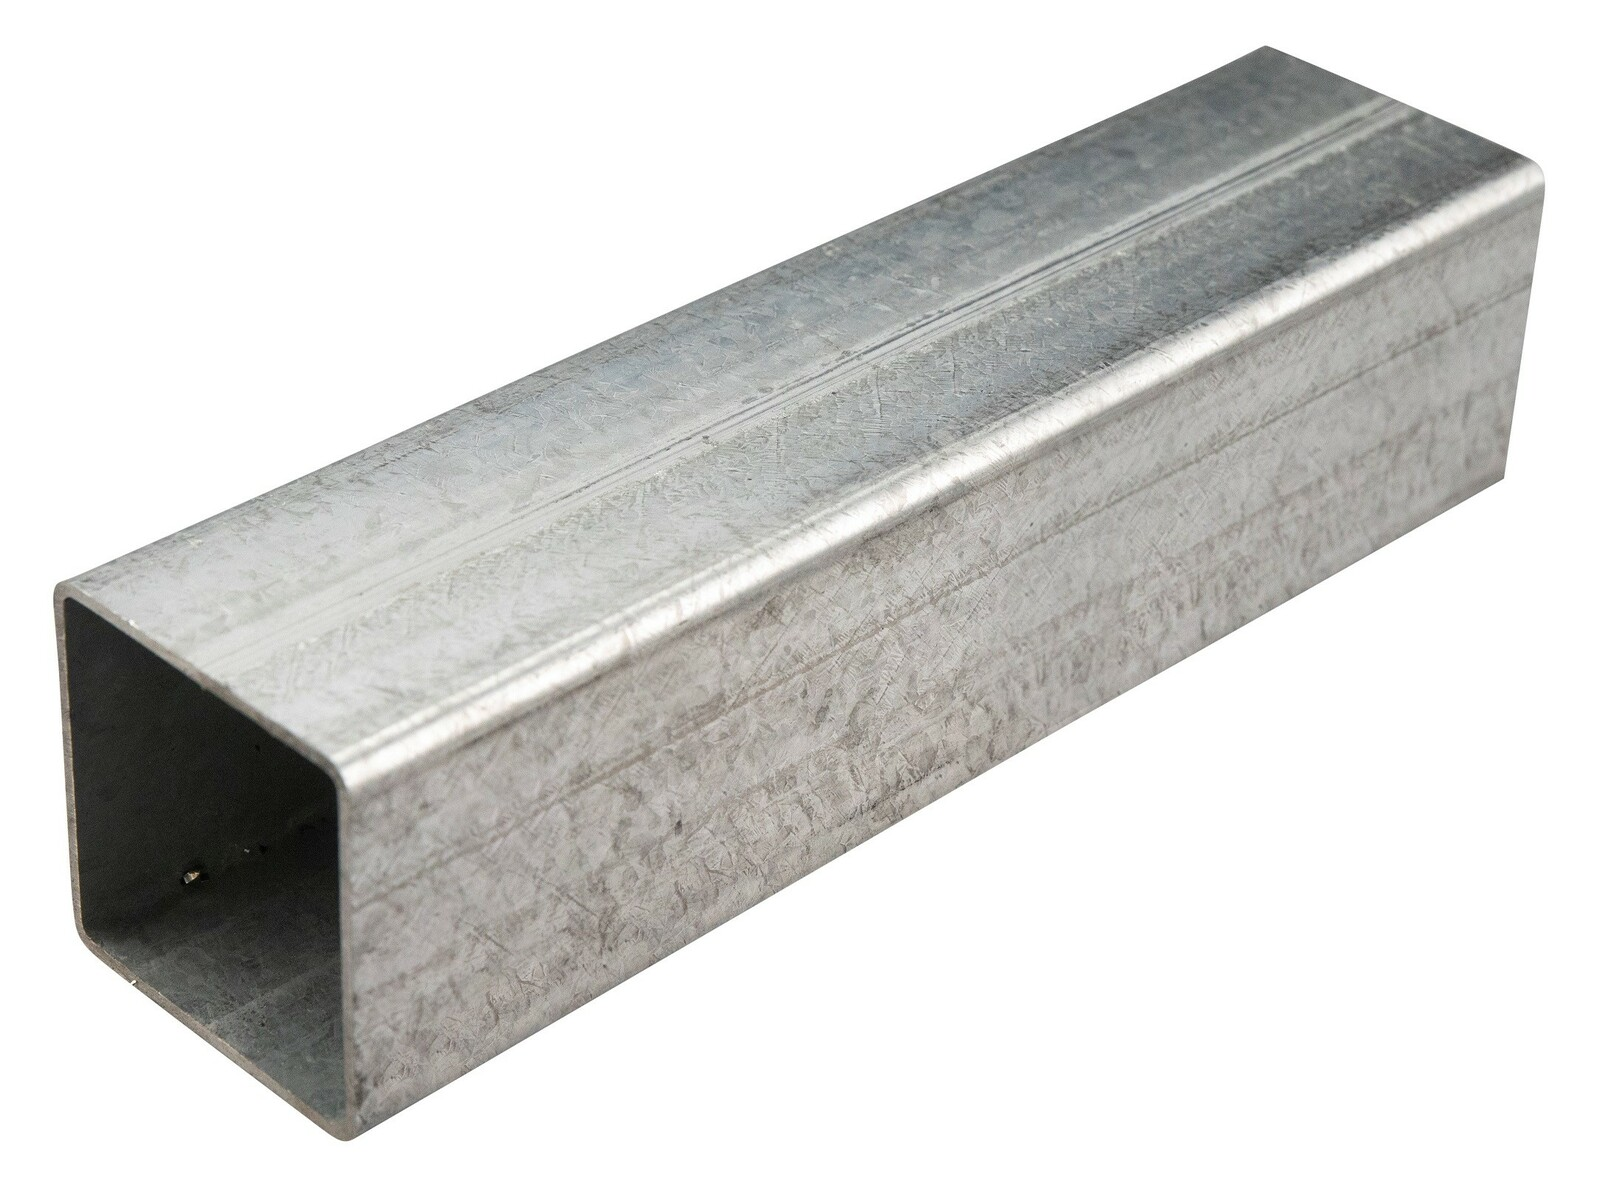 Post 75 x 75 x 8000 Galvanised 2.5mm Thick